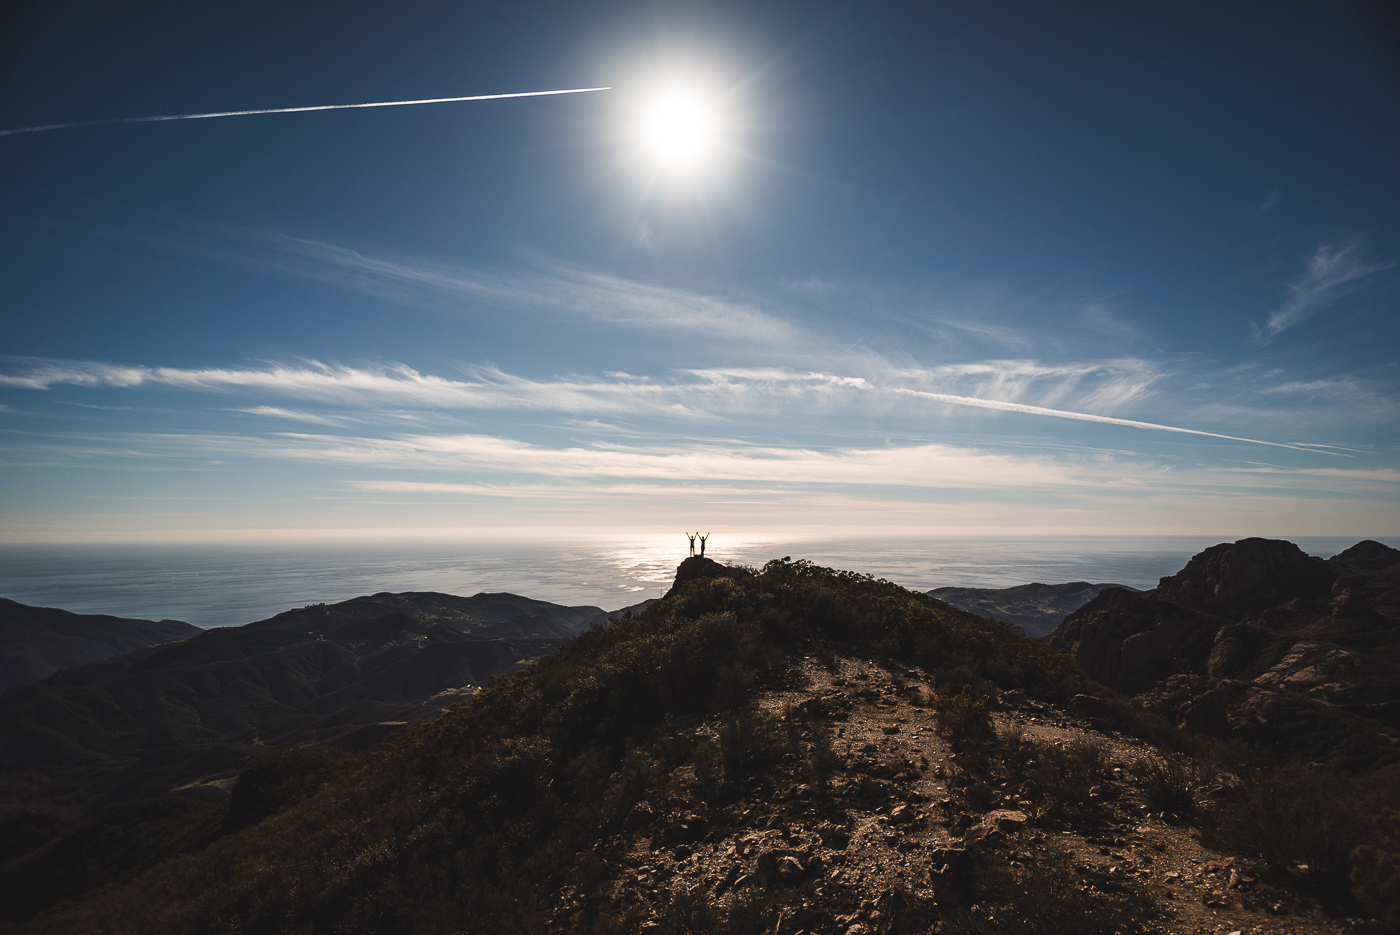 Shot of the Week: View from the Top (Sandstone Peak, Santa Monica Mountains, Malibu, California, USA)